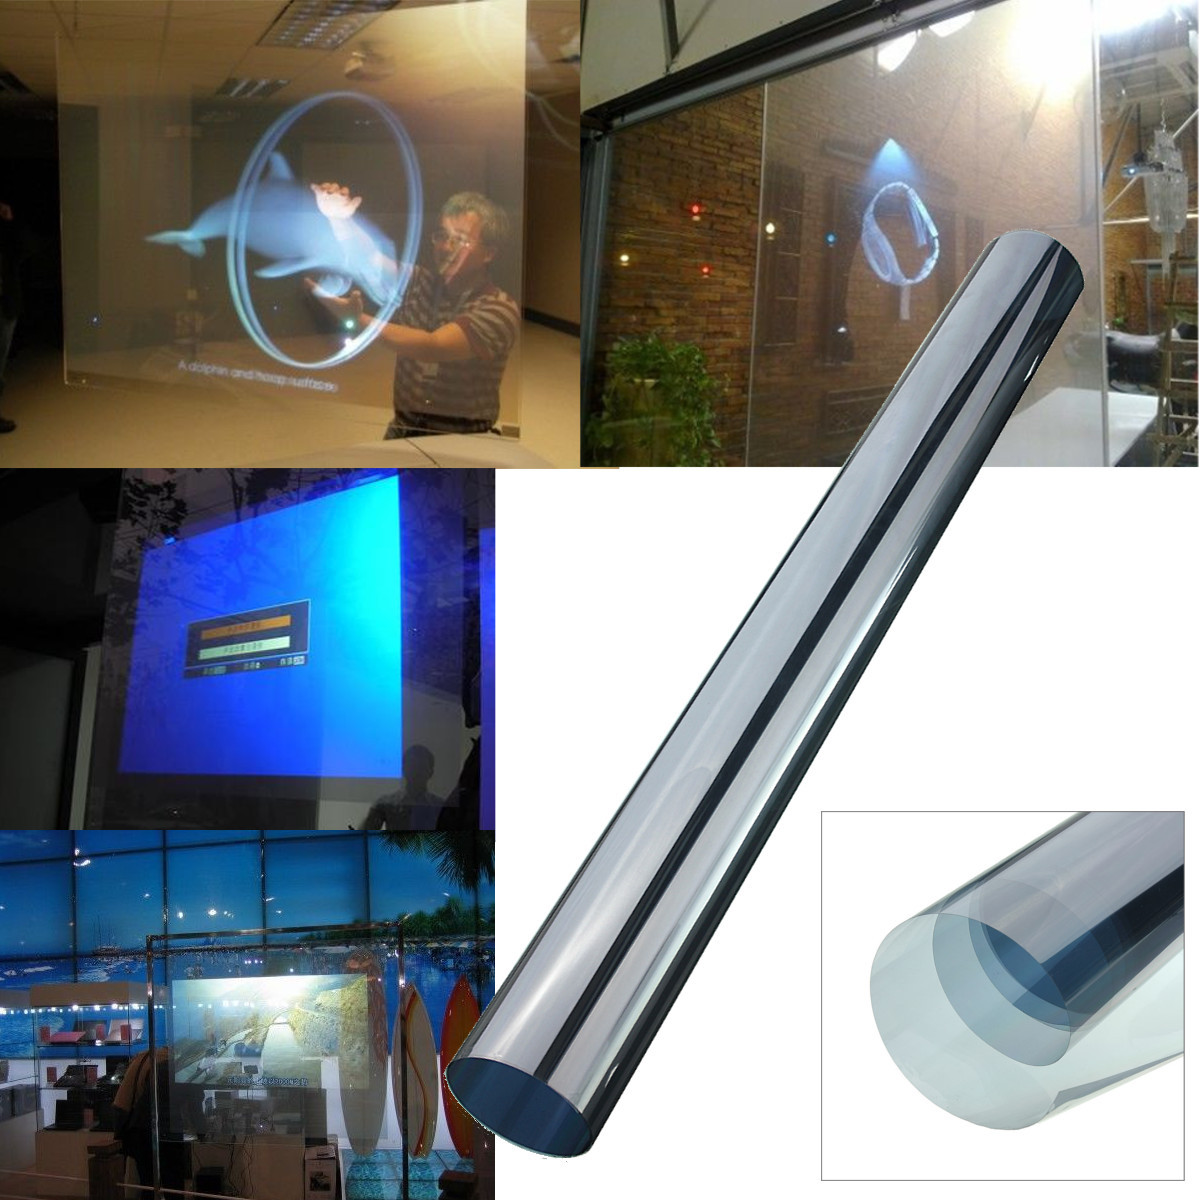 60x120CM Self Adhesive Holographic Rear Projection Film Screen Window Display Self Adhesive Transparent Rear Projection Foil